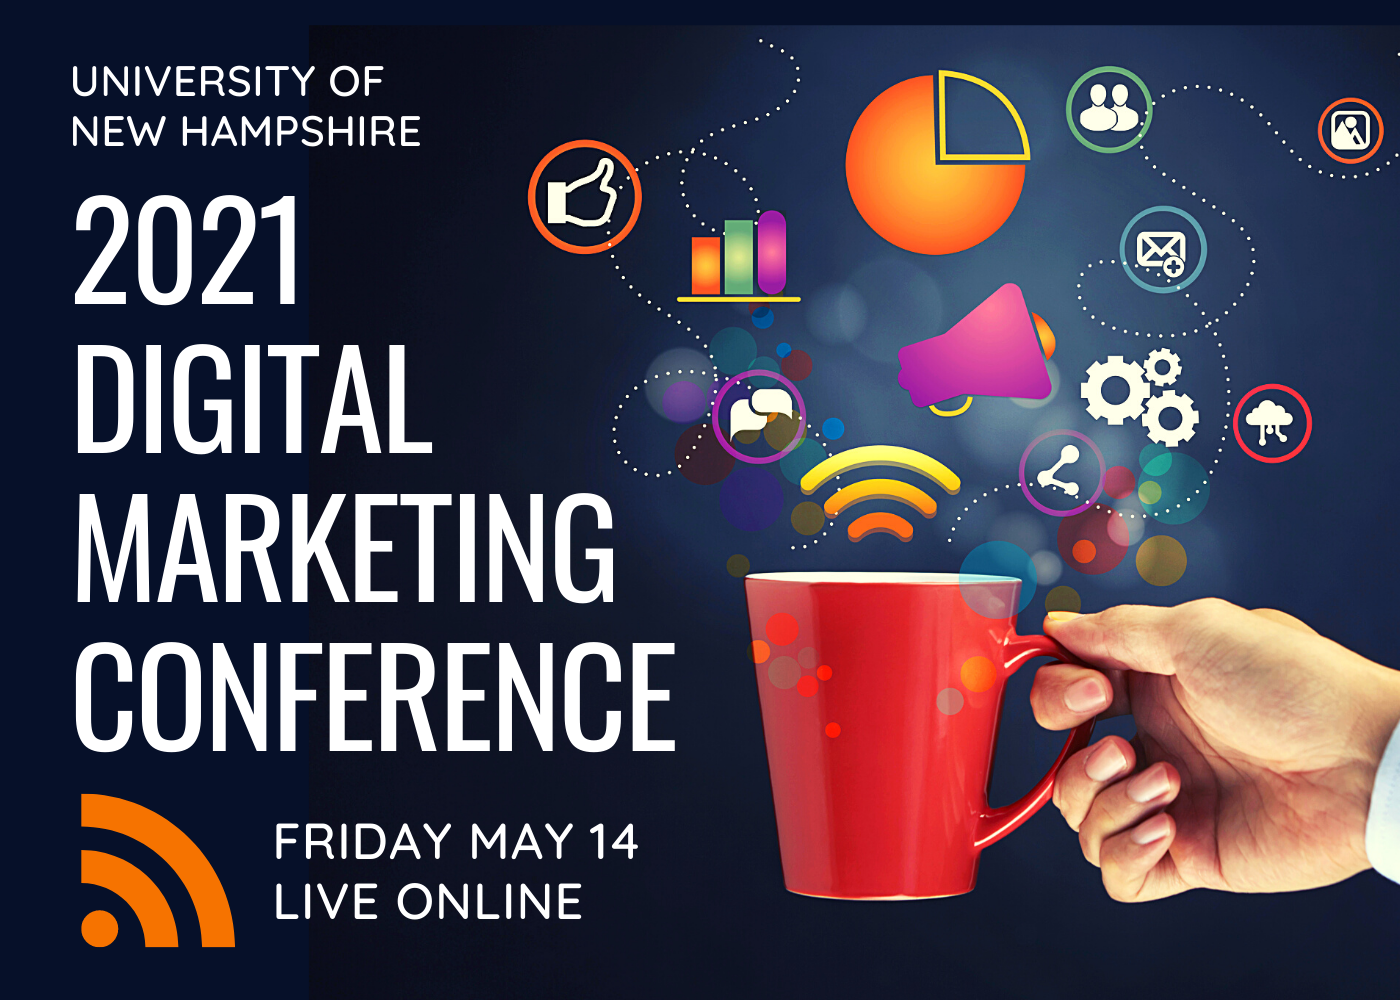 UNH Digital Marketing Conference